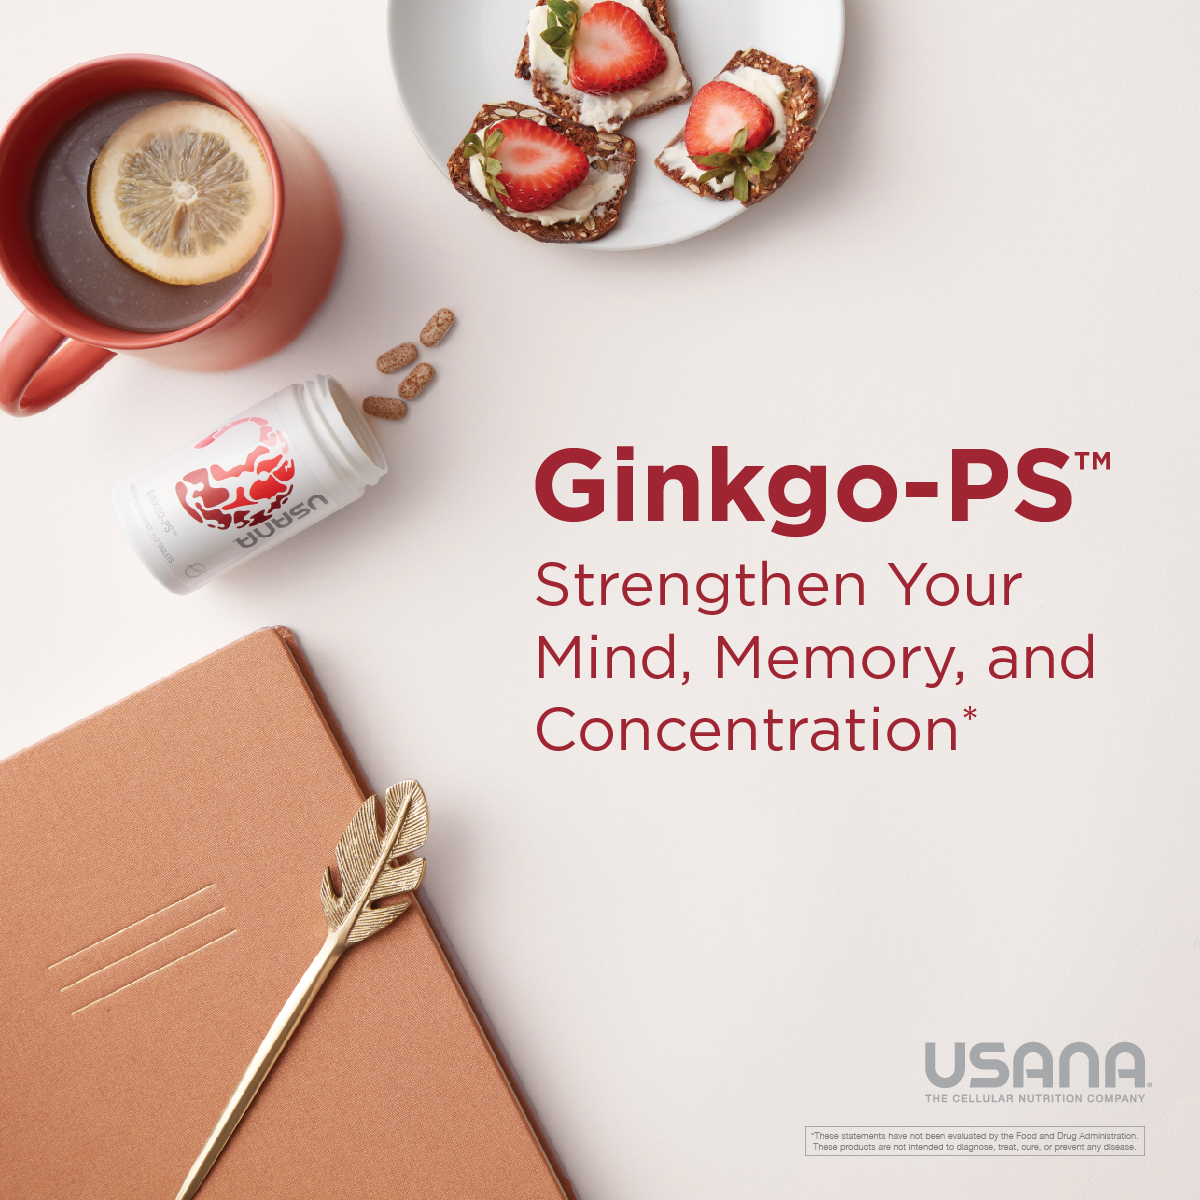 Ginkgo-PS_ Strengthen Your Mind Shareable.jpeg